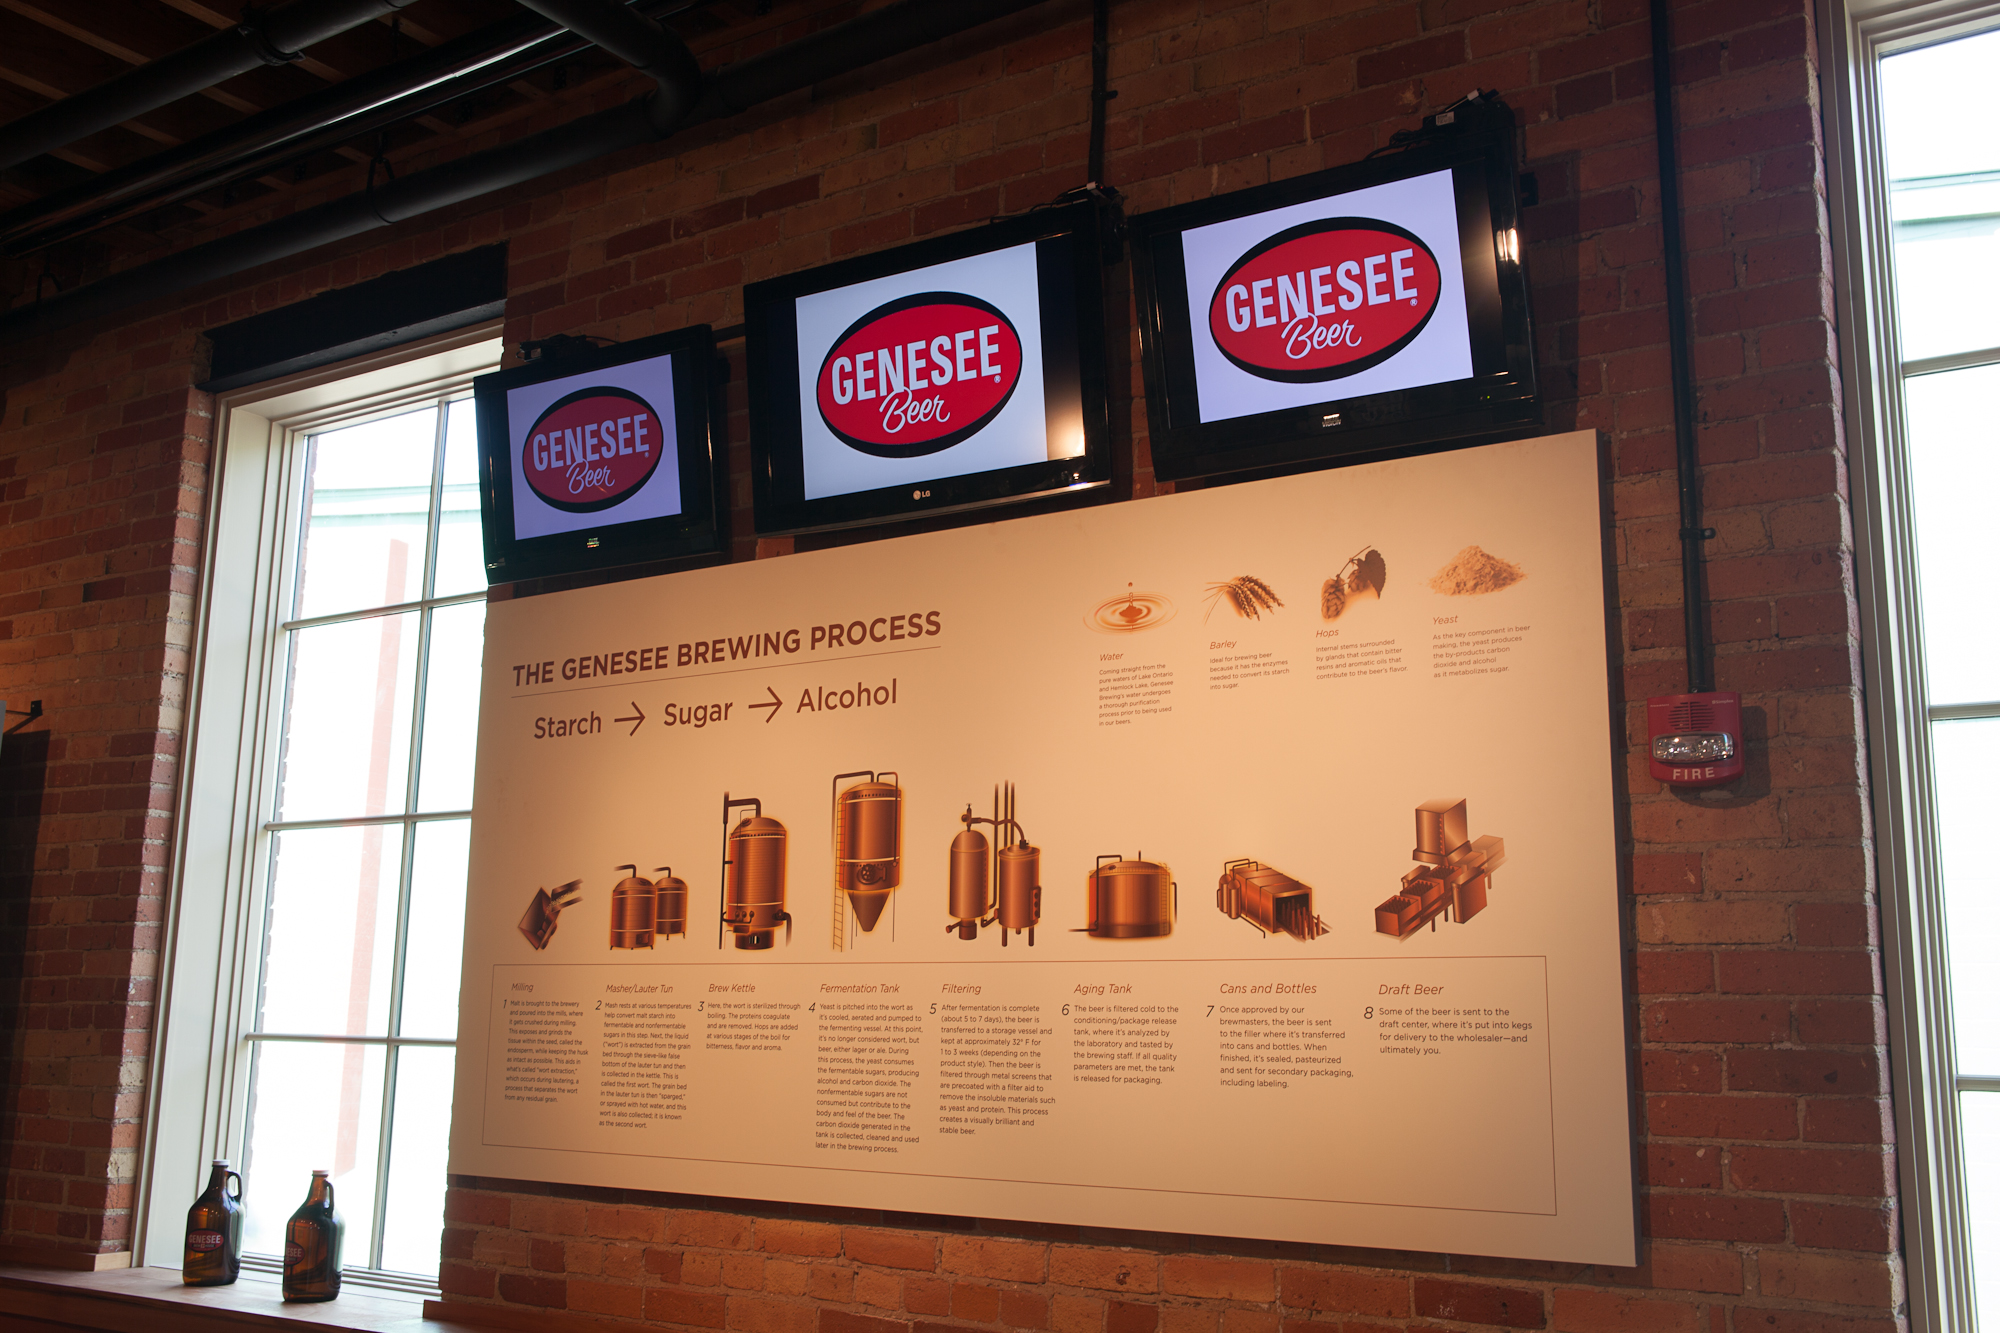 Brew House Exhibit - Brewing Process